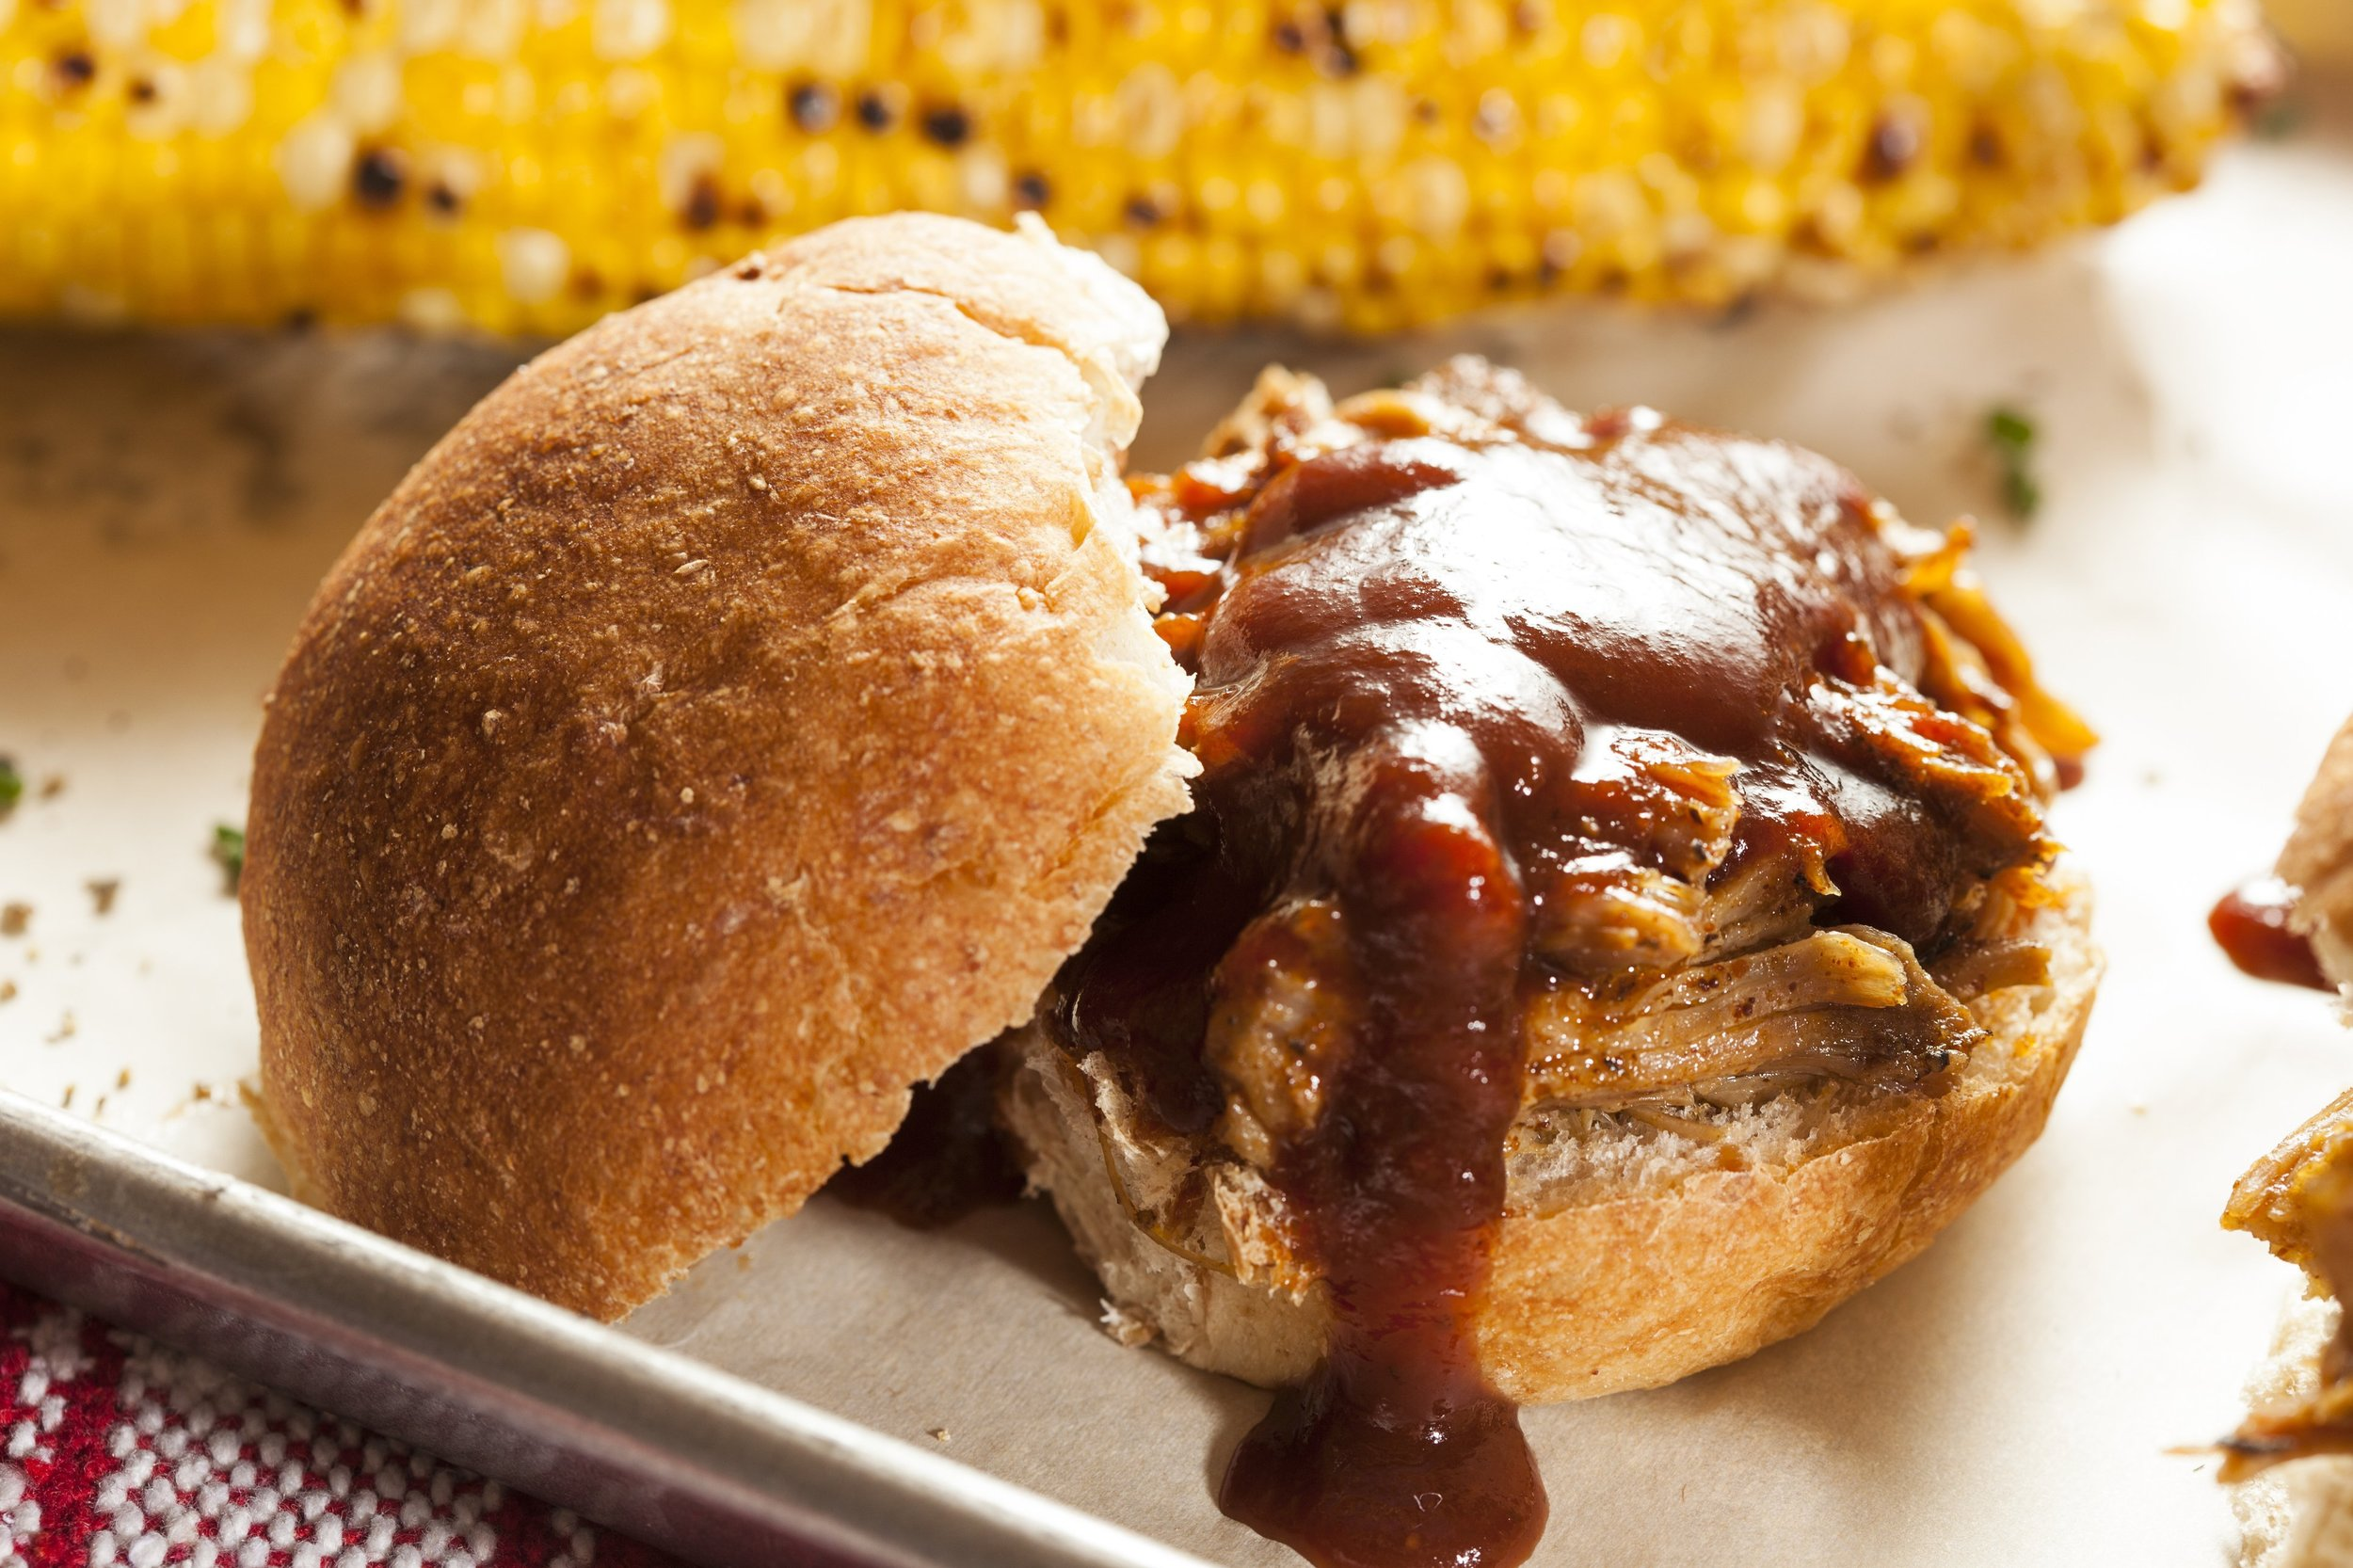 Barbeque chicken sandwich on a roll served with corn